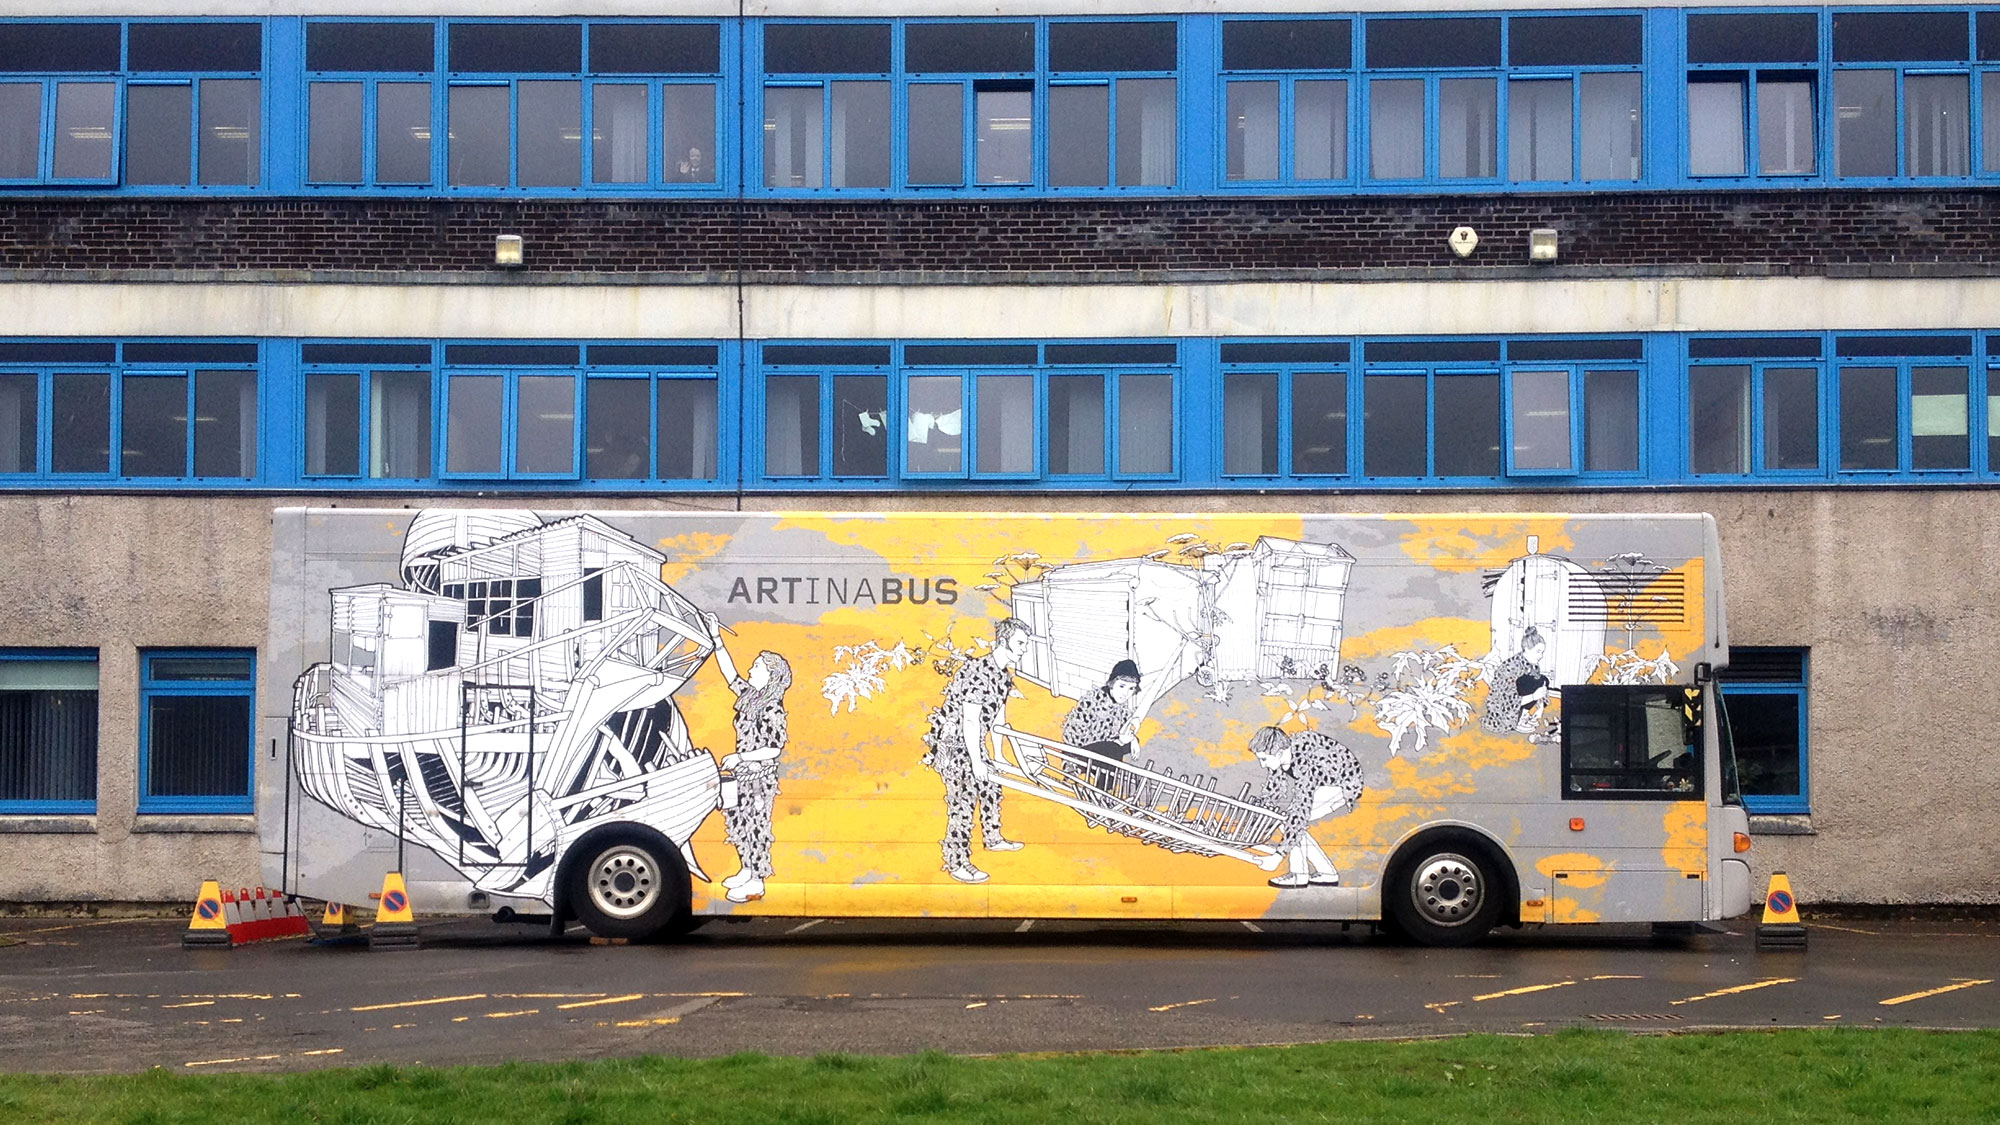 Travelling Gallery parked in front of large secondary school